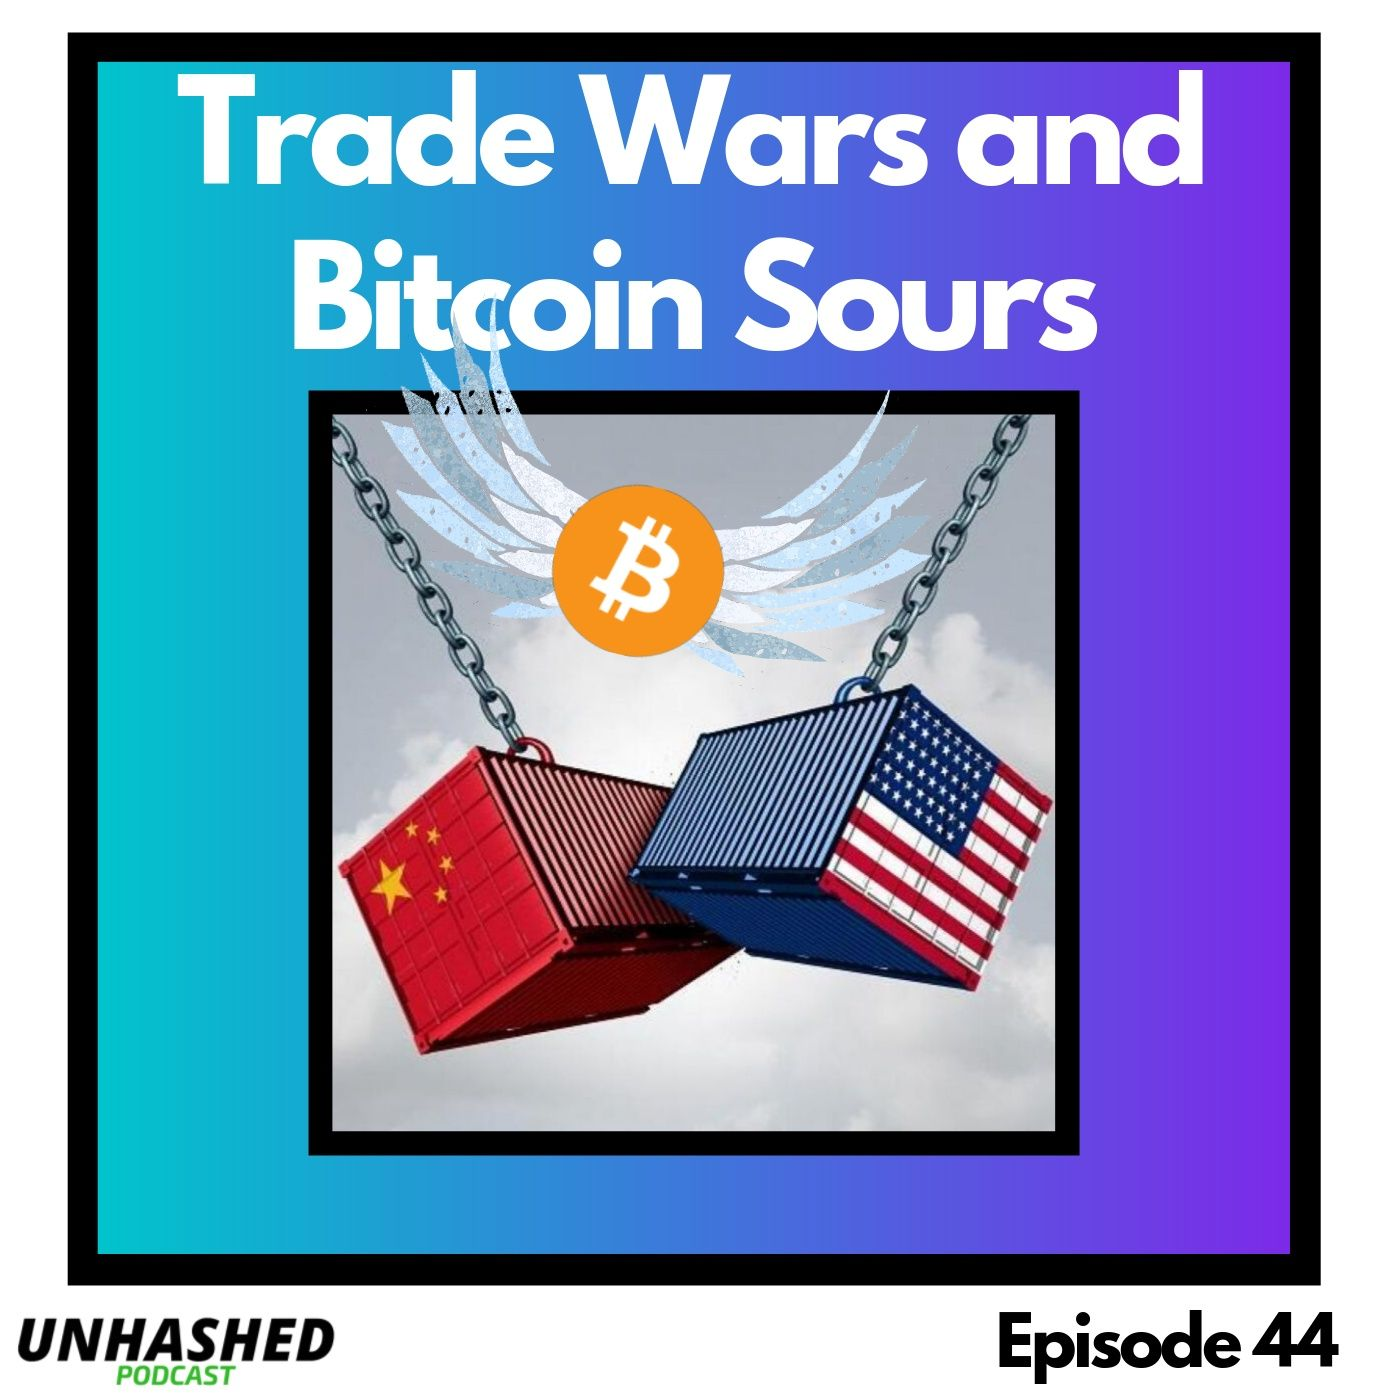 Trade Wars and Bitcoin Sours